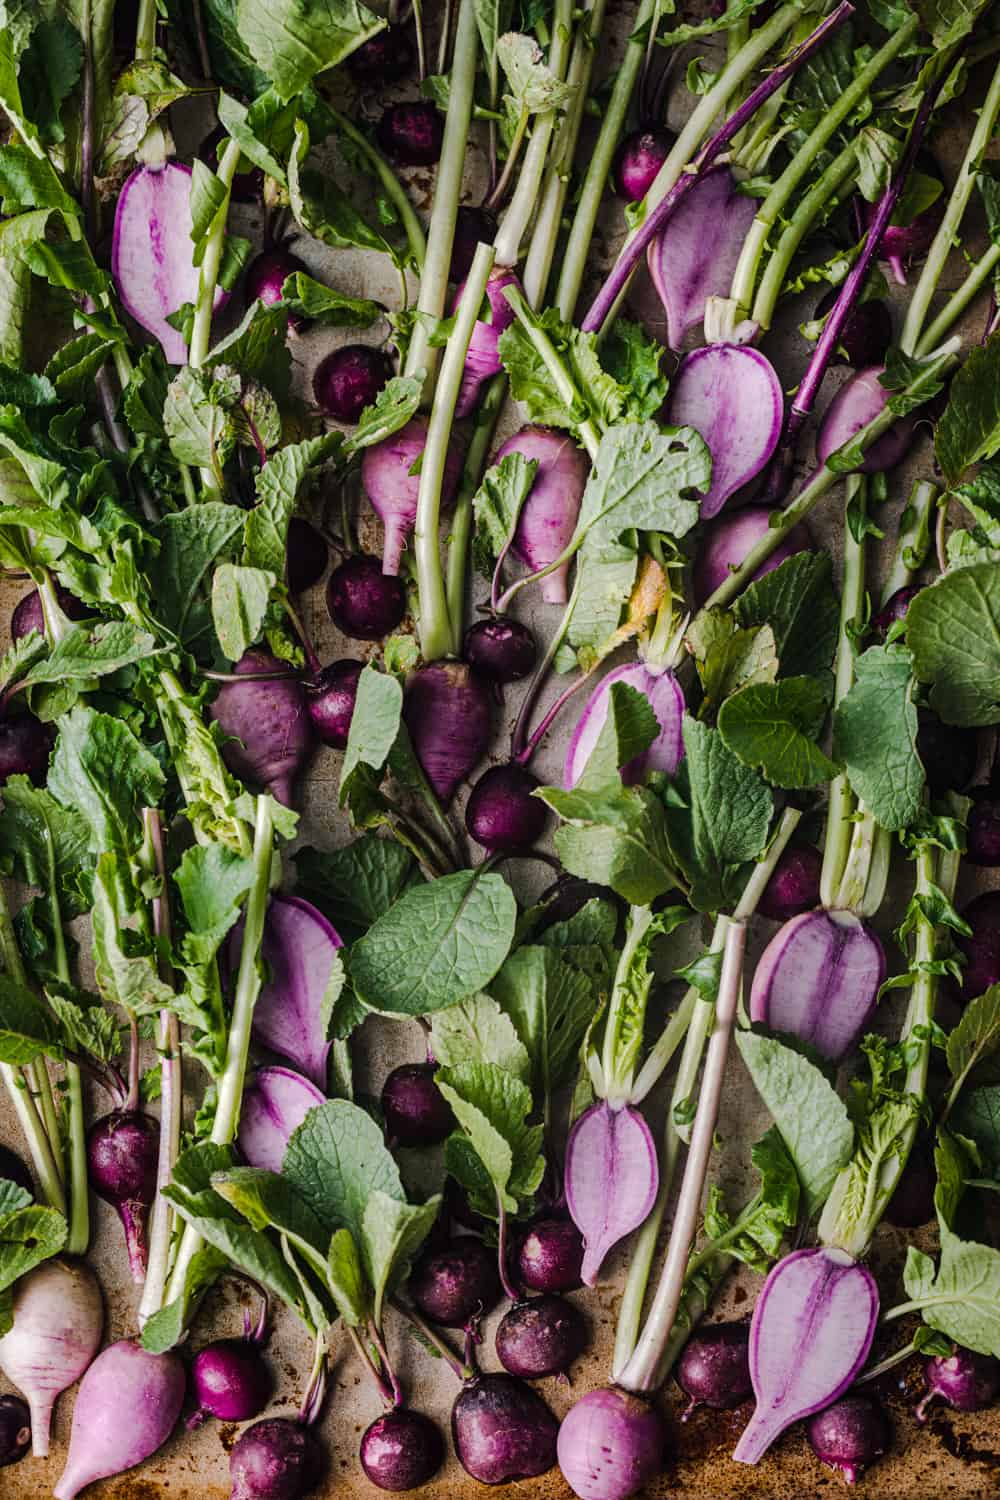 Ninja and purple round radishes cut in half with their leafy green tops still on, overhead shot on a baking sheet